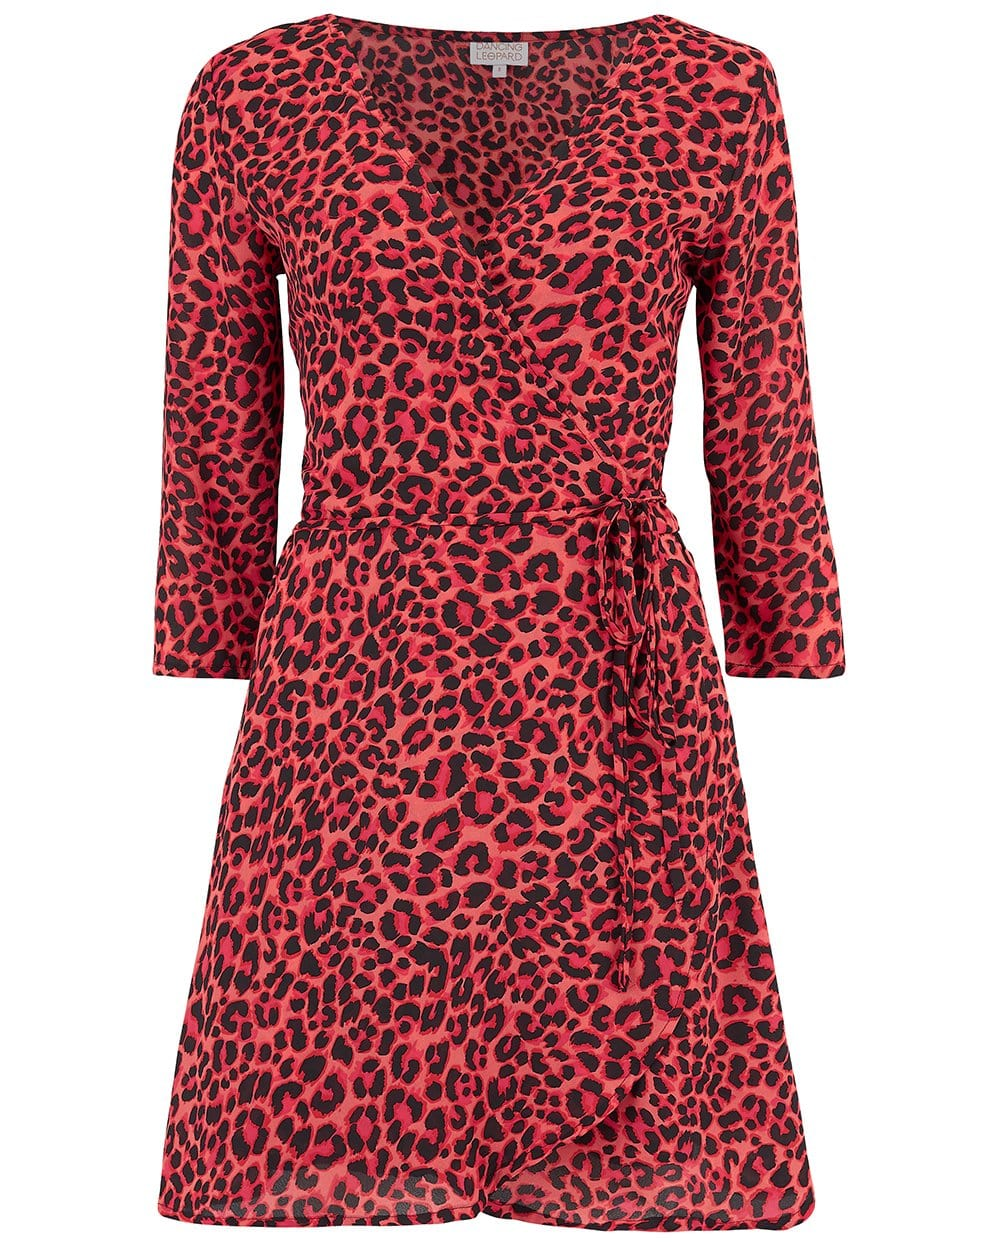 Front view of Dancing Leopard Teagan Mini Dress in red leopard print on white background